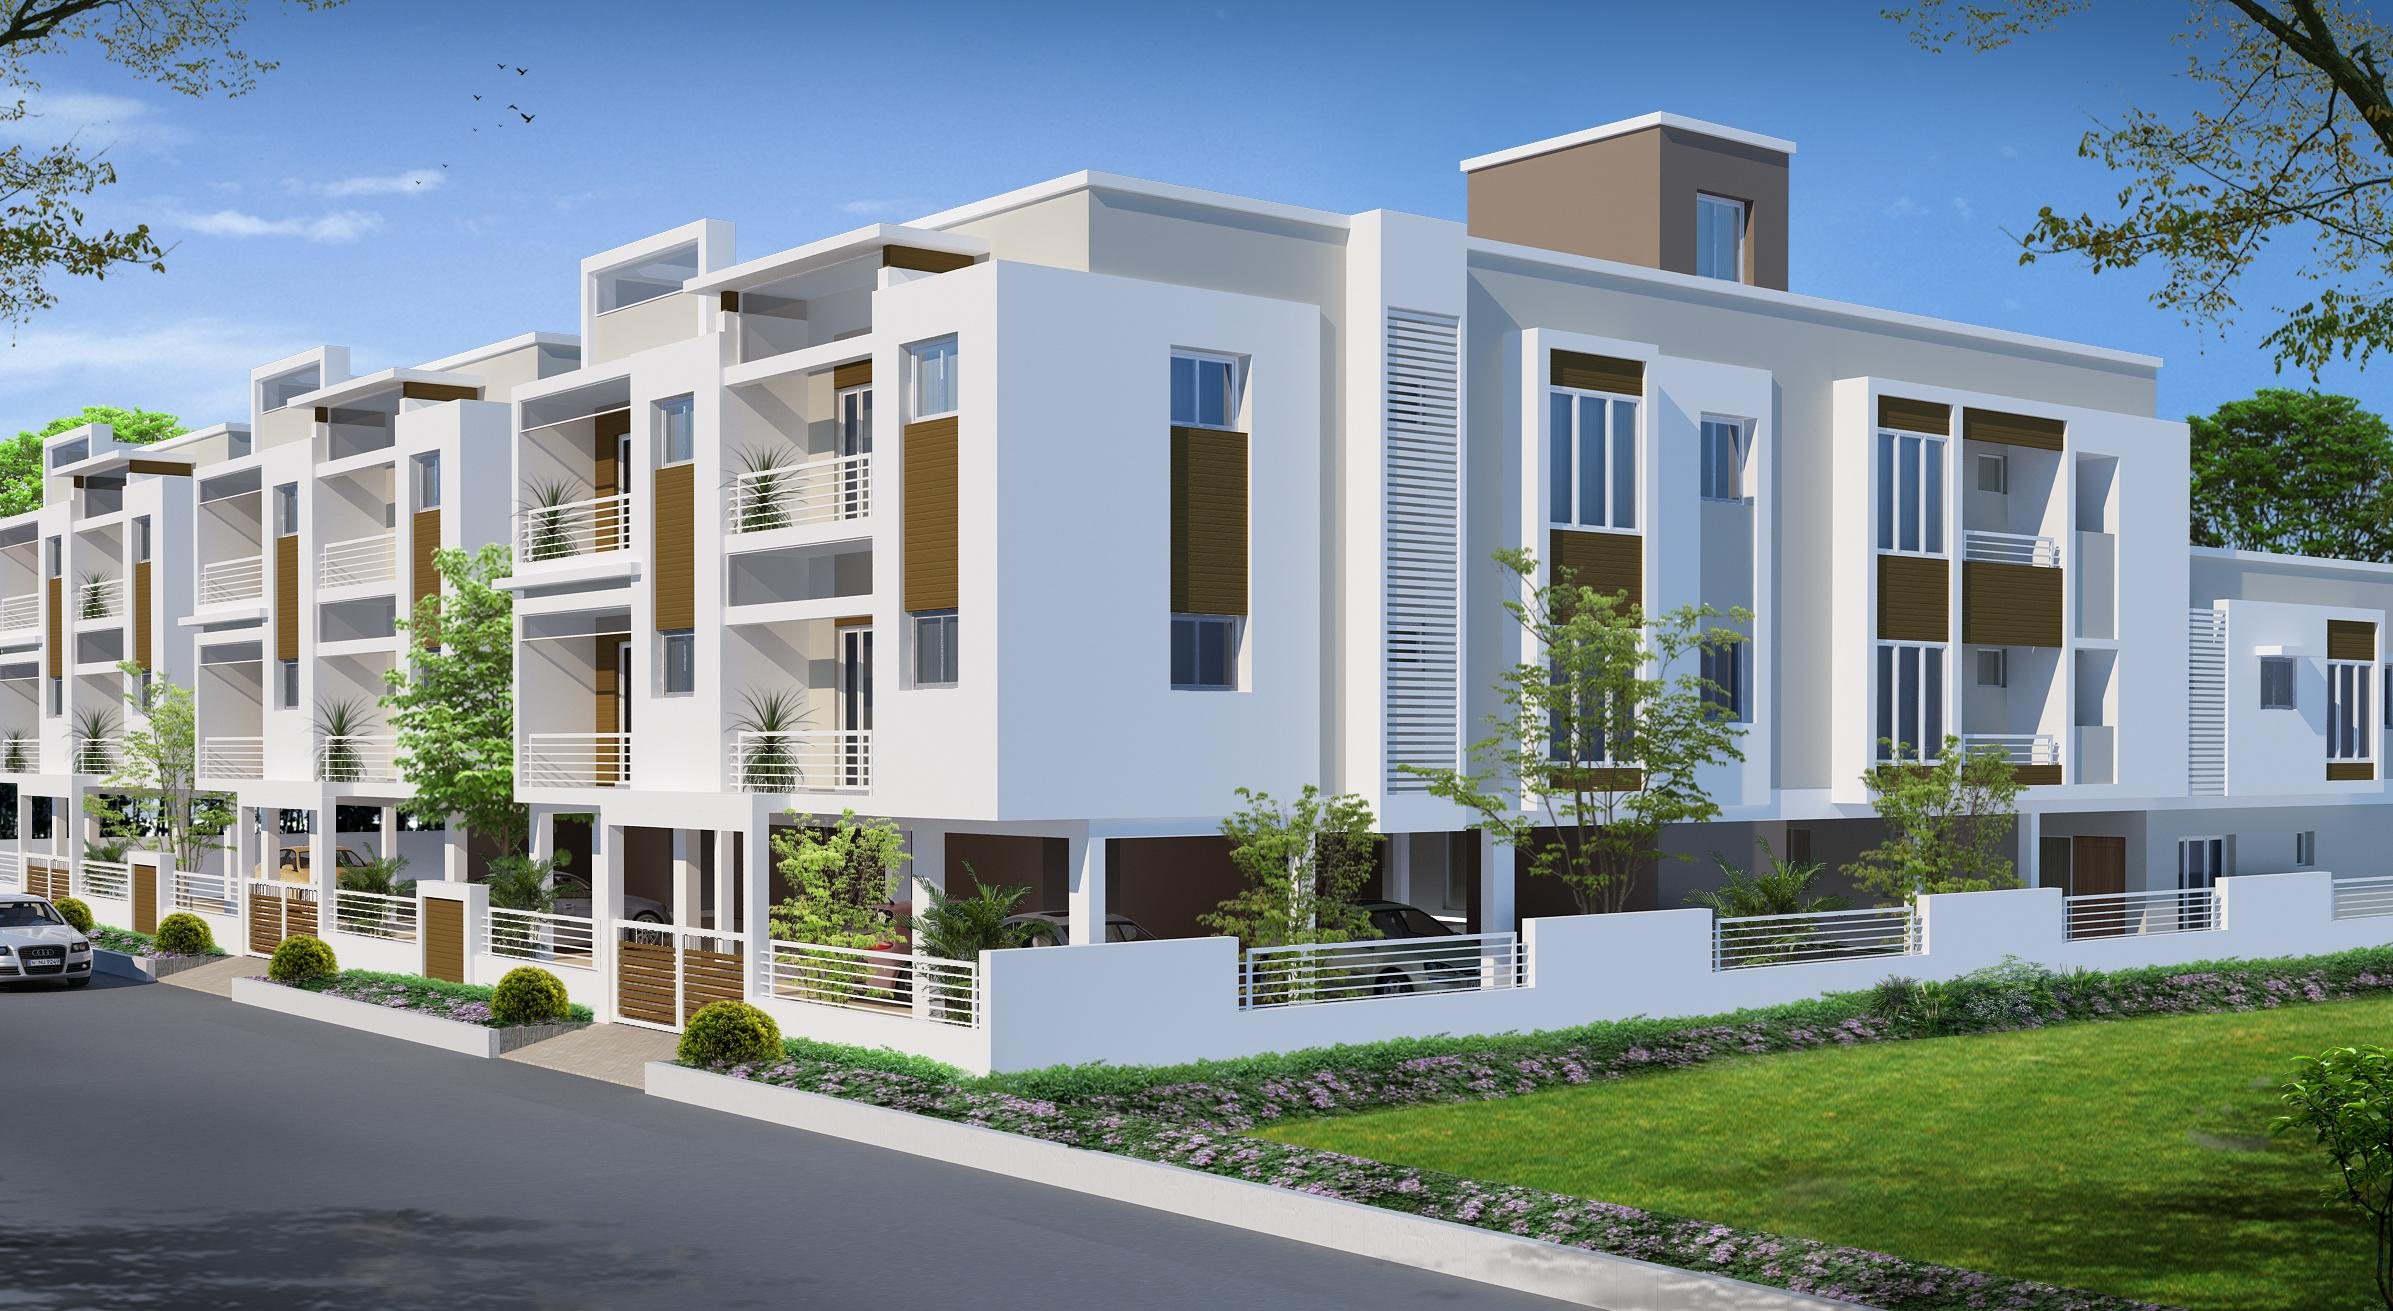 House Front Wall Elevation : Duplex boundary wall front elevation joy studio design